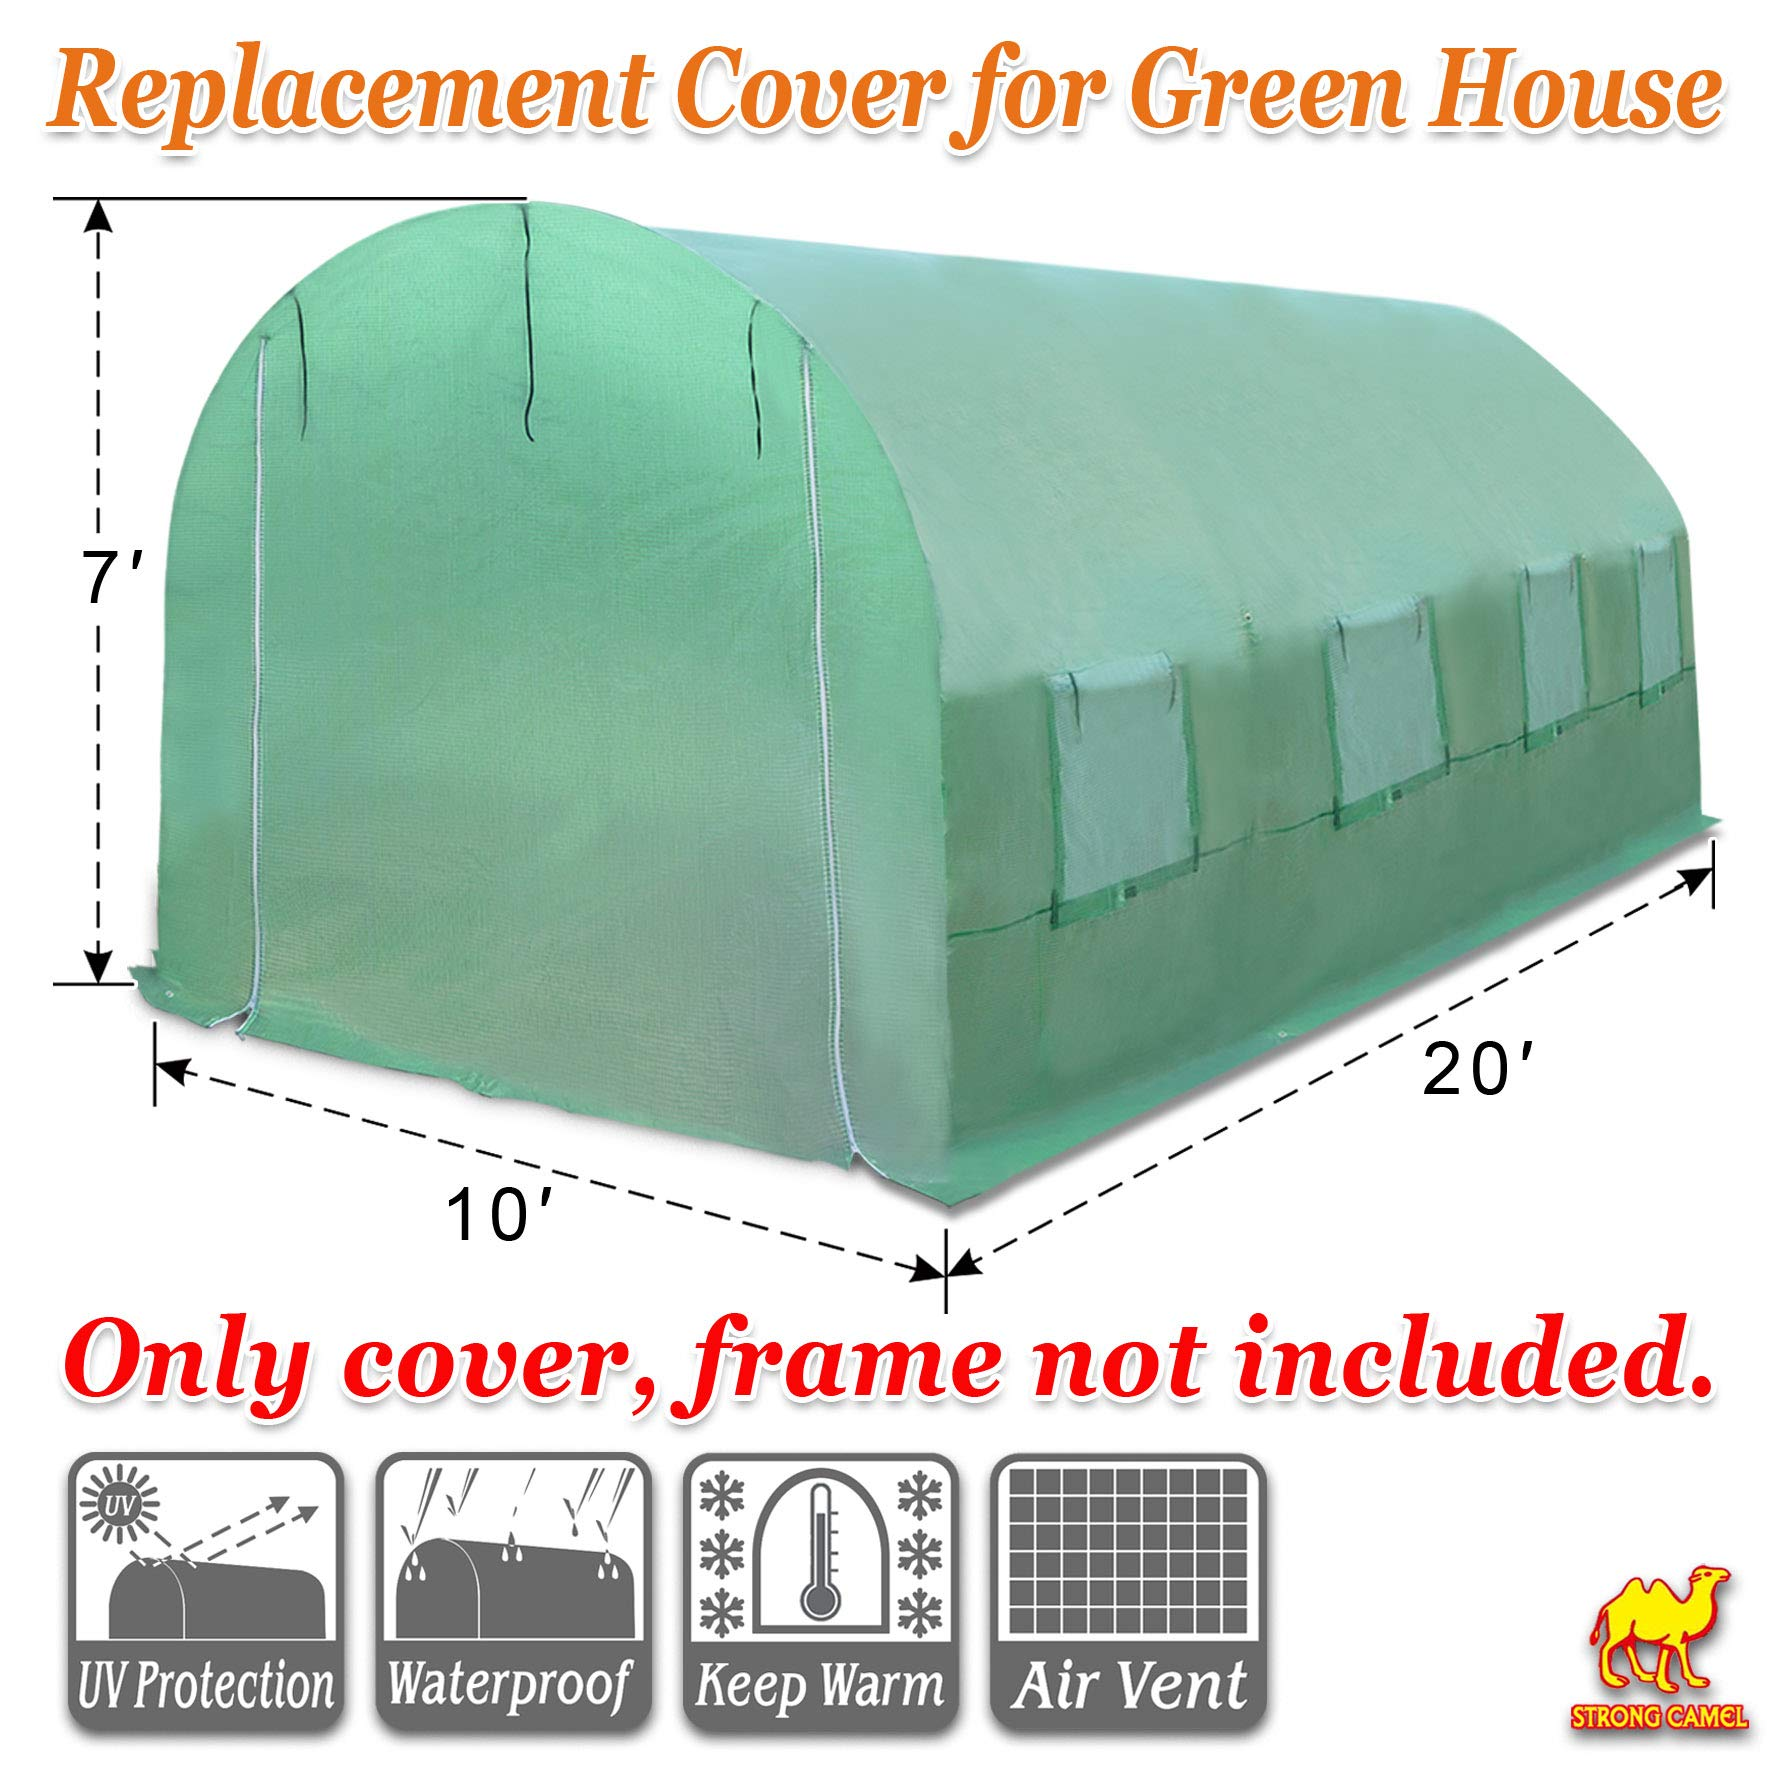 Strong Camel Greenhouse Replacement Cover 20'X10'X7' Green House Spare Parts Cover (Frame NOT Included) by Strong Camel